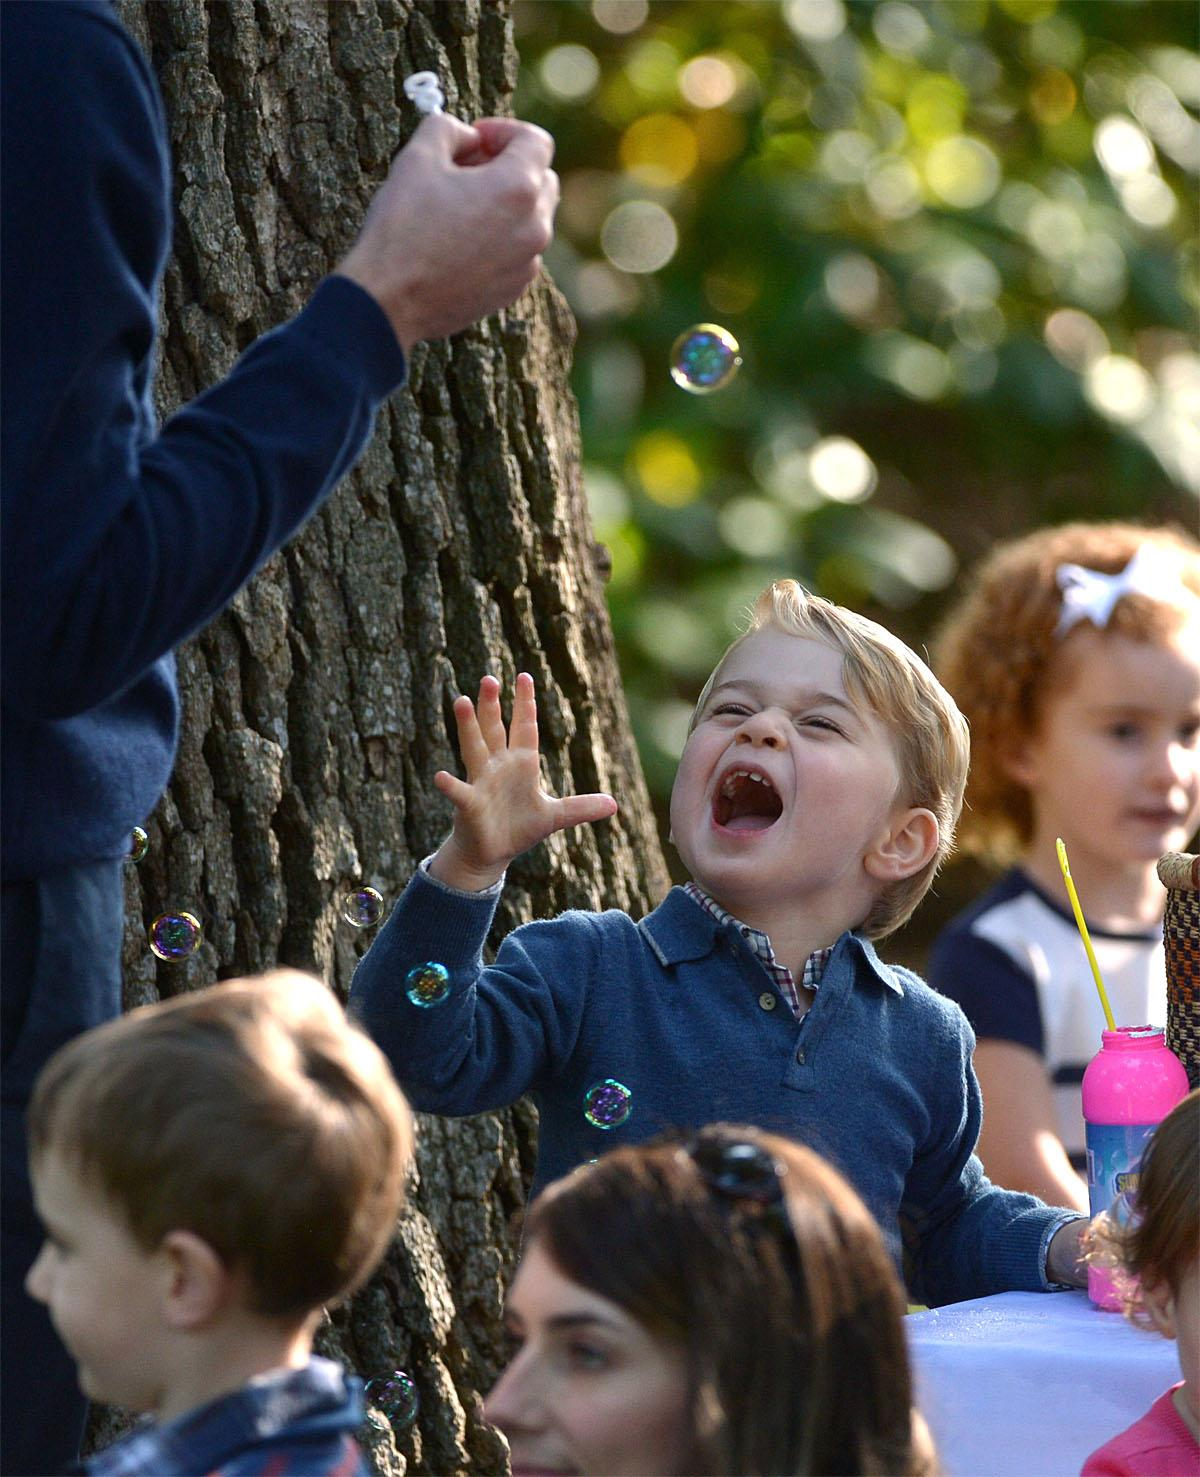 Britain's Prince George plays with bubbles during a children's tea party at Government House in Victoria, British Columbia Thursday, Sept. 29, 2016. (Jonathan Hayward/The Canadian Press via AP)